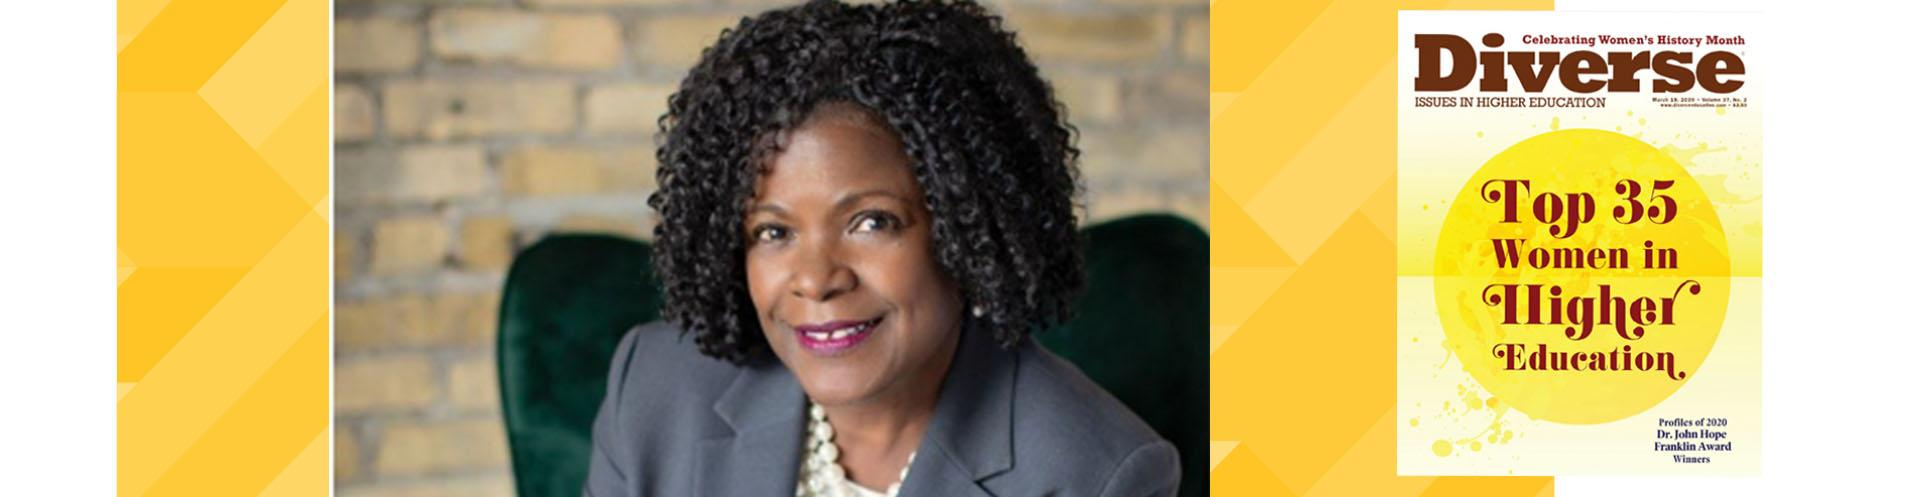 Chief diversity officer recognized